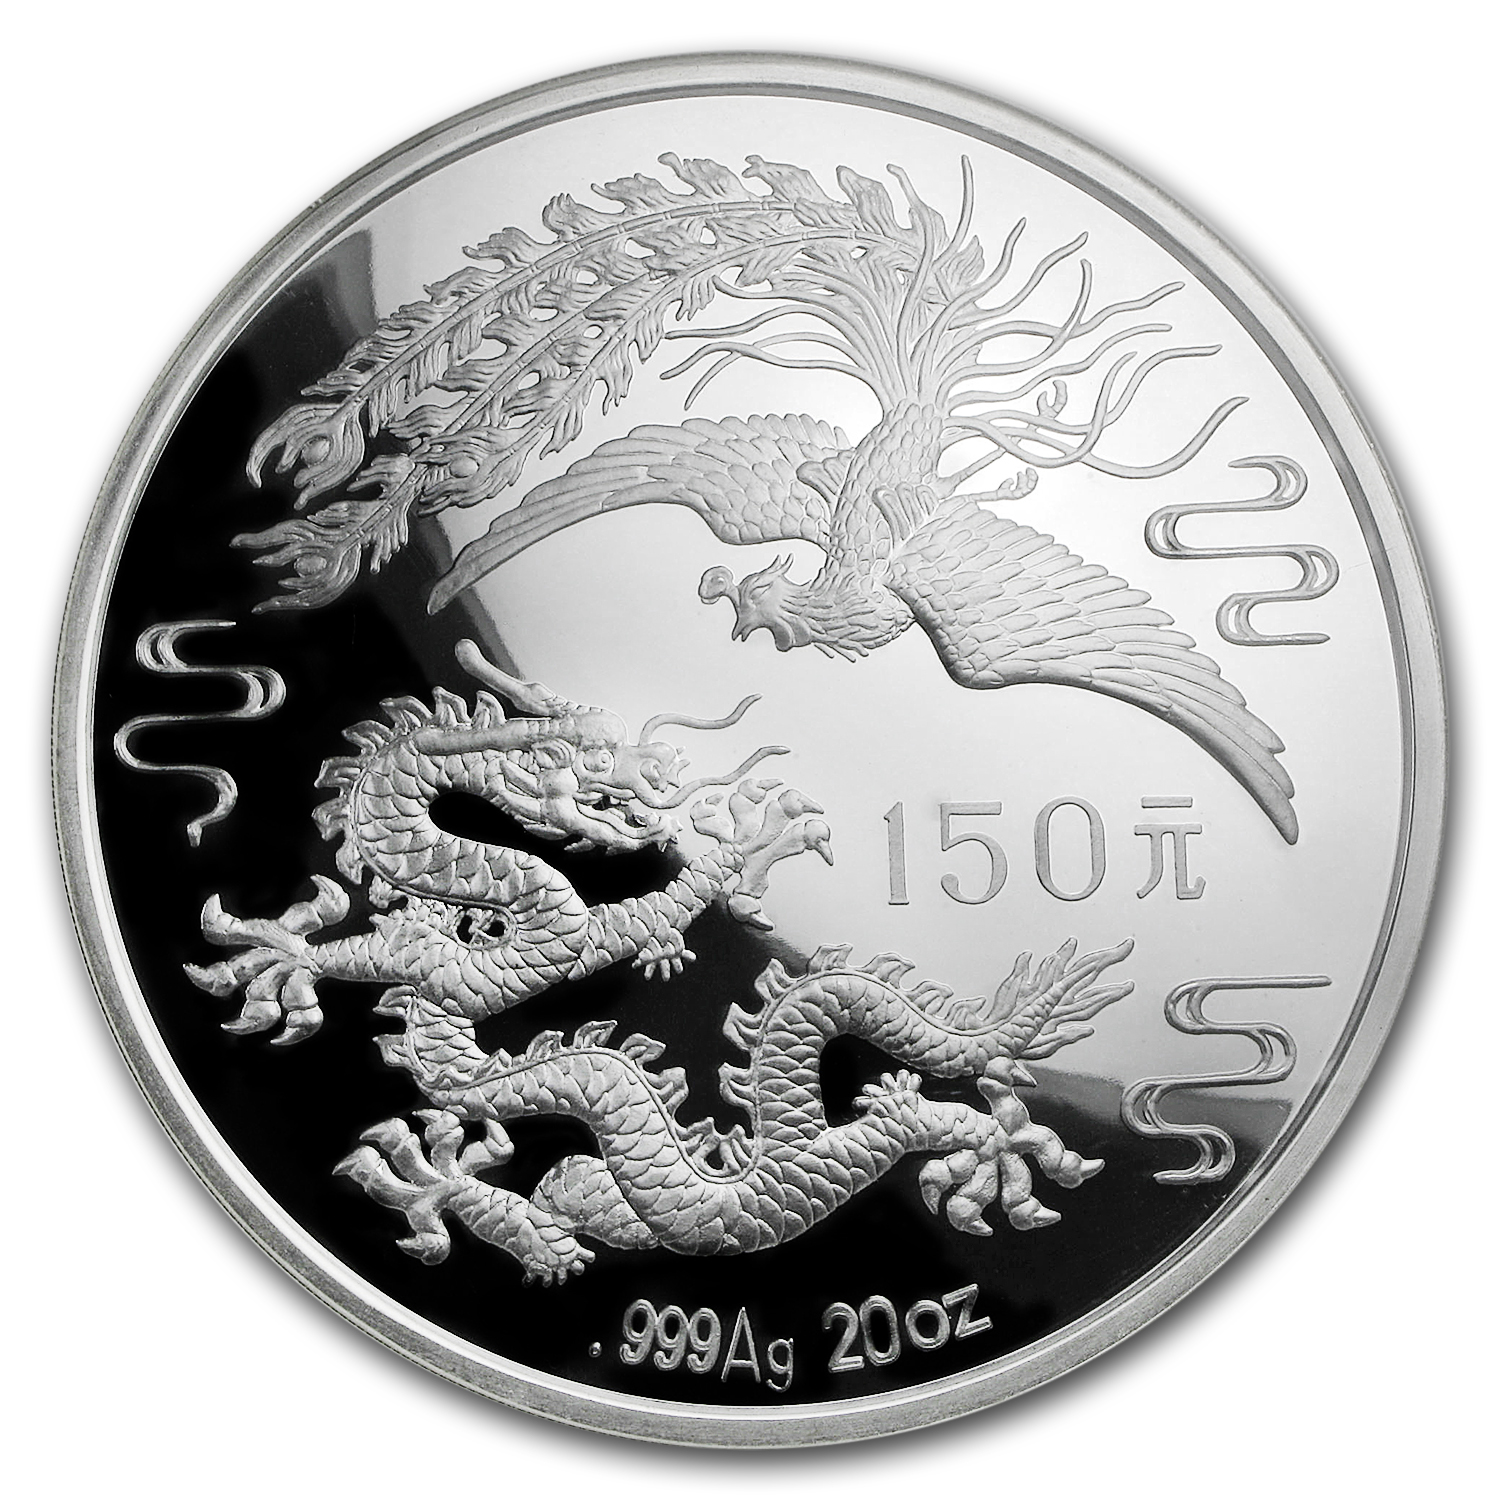 1990 China 20 oz Silver 150 Yuan Dragon and Phoenix PF-67 NGC